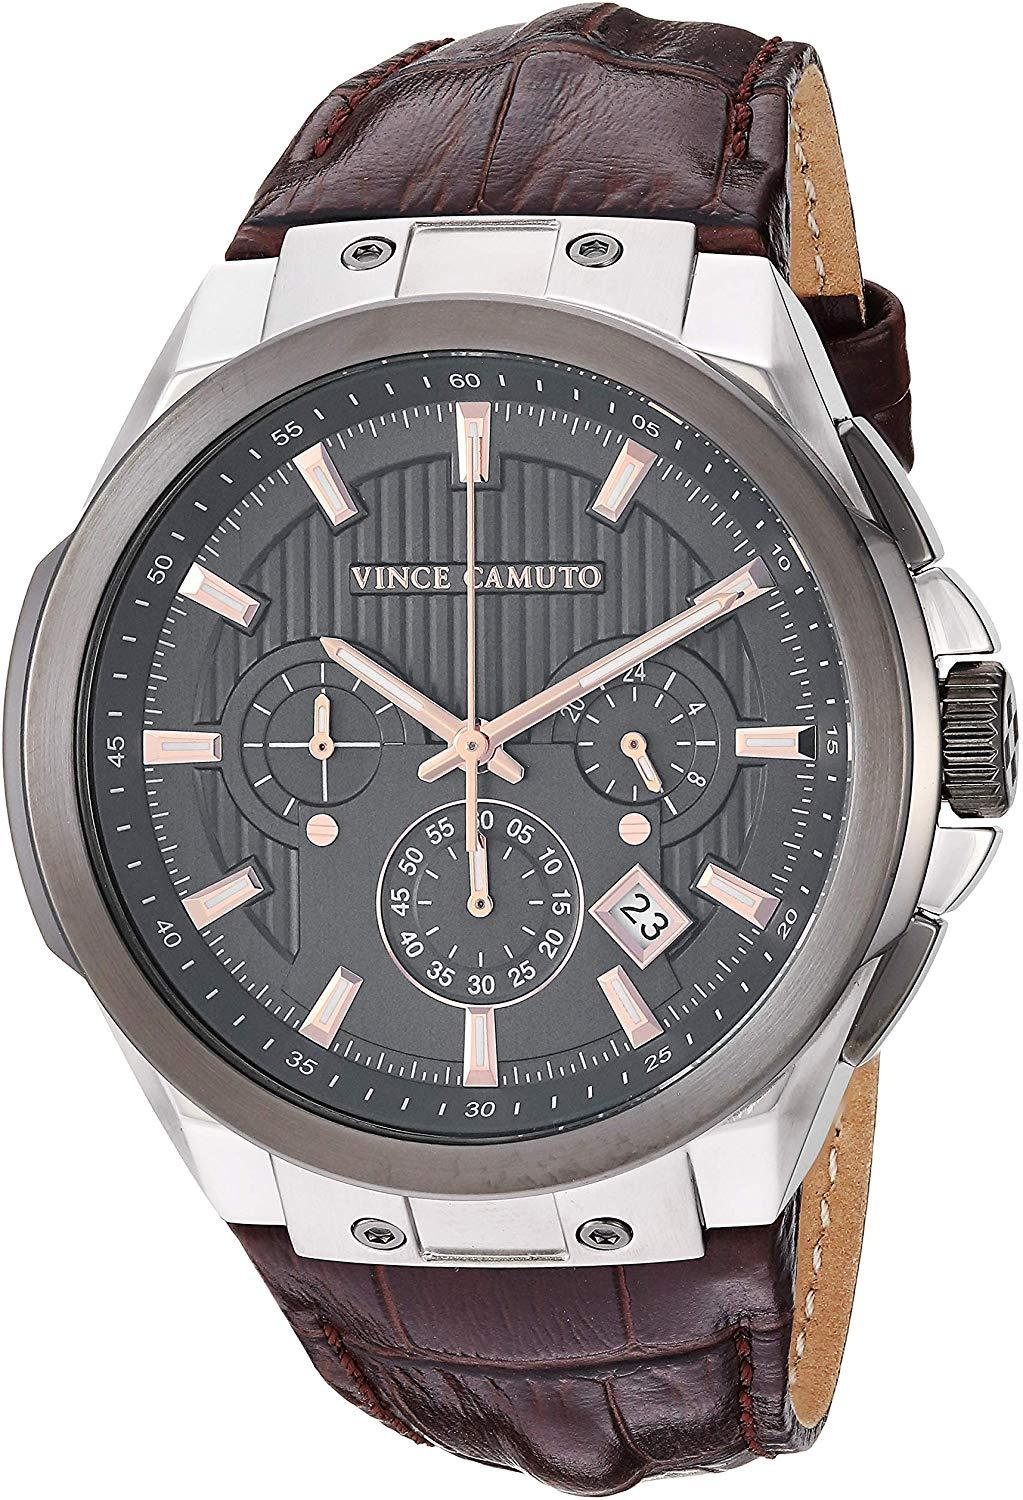 Men's VC/1111DGSG Multi-Function Silver-Tone and Brown Croco-Grain Leather Strap Watch